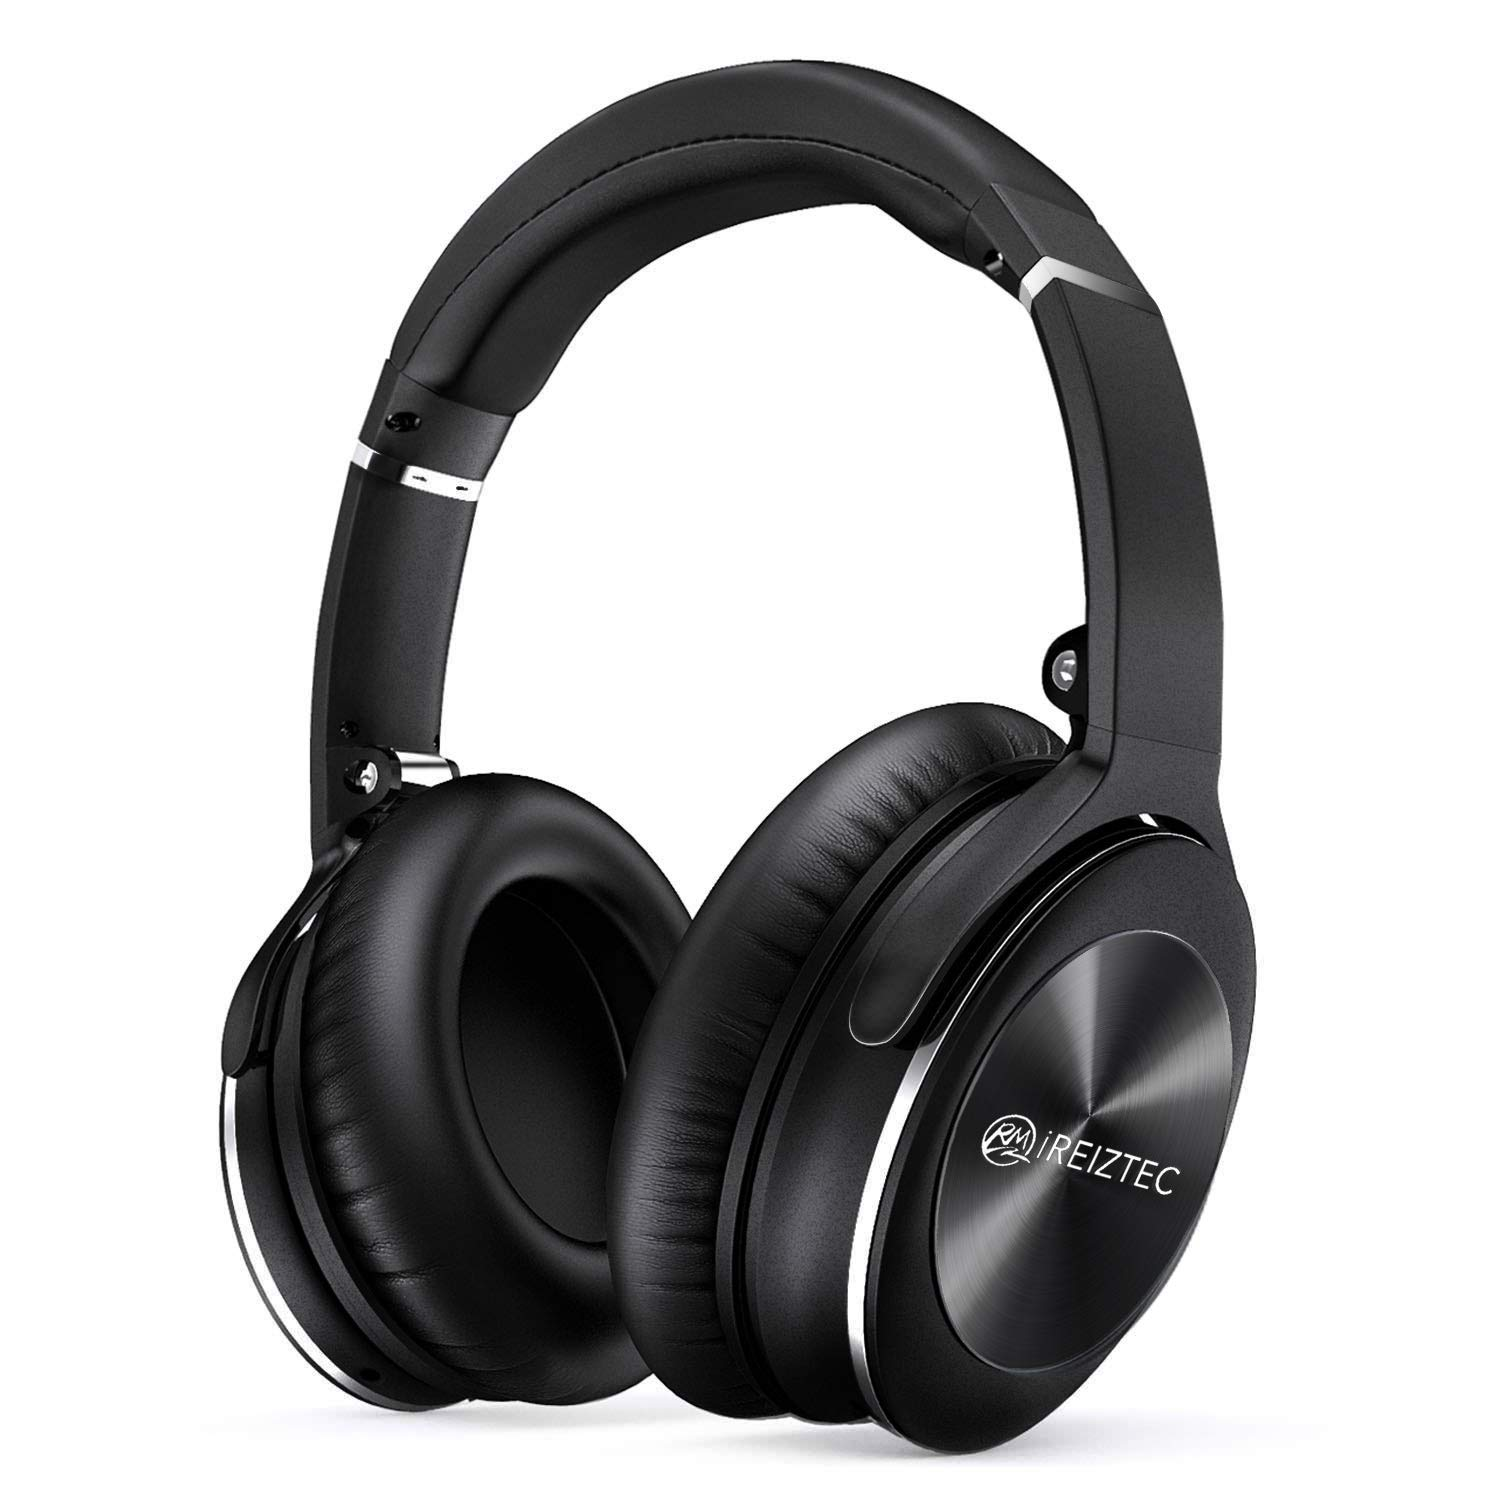 Bluetooth Wireless Headphones Over Ear Noise Cancelling Foldable Headset HI-FI Stereo Superior Deep Bass Headphones Comfortable Protein Earpads 30Hrs Playtime with Mic for PC/Cell Phone